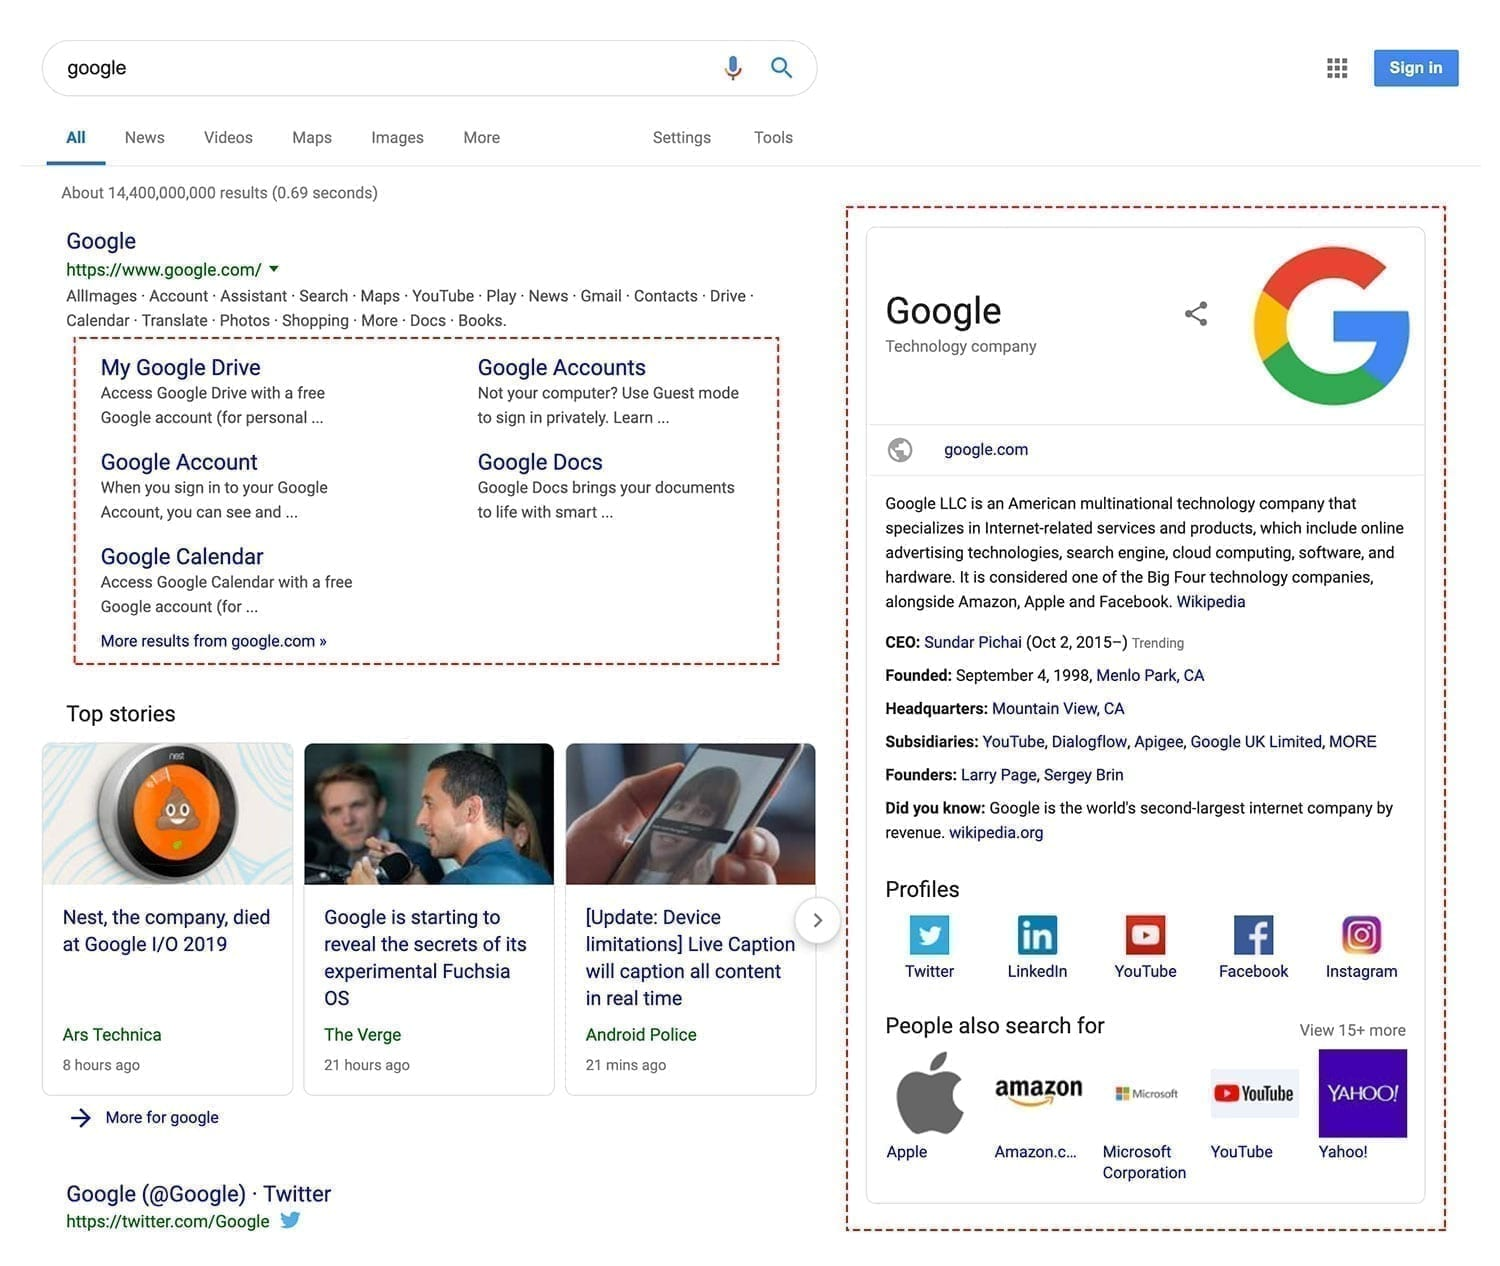 Structured Data and Schema Tags enable Google to return Rich Snippets in Search